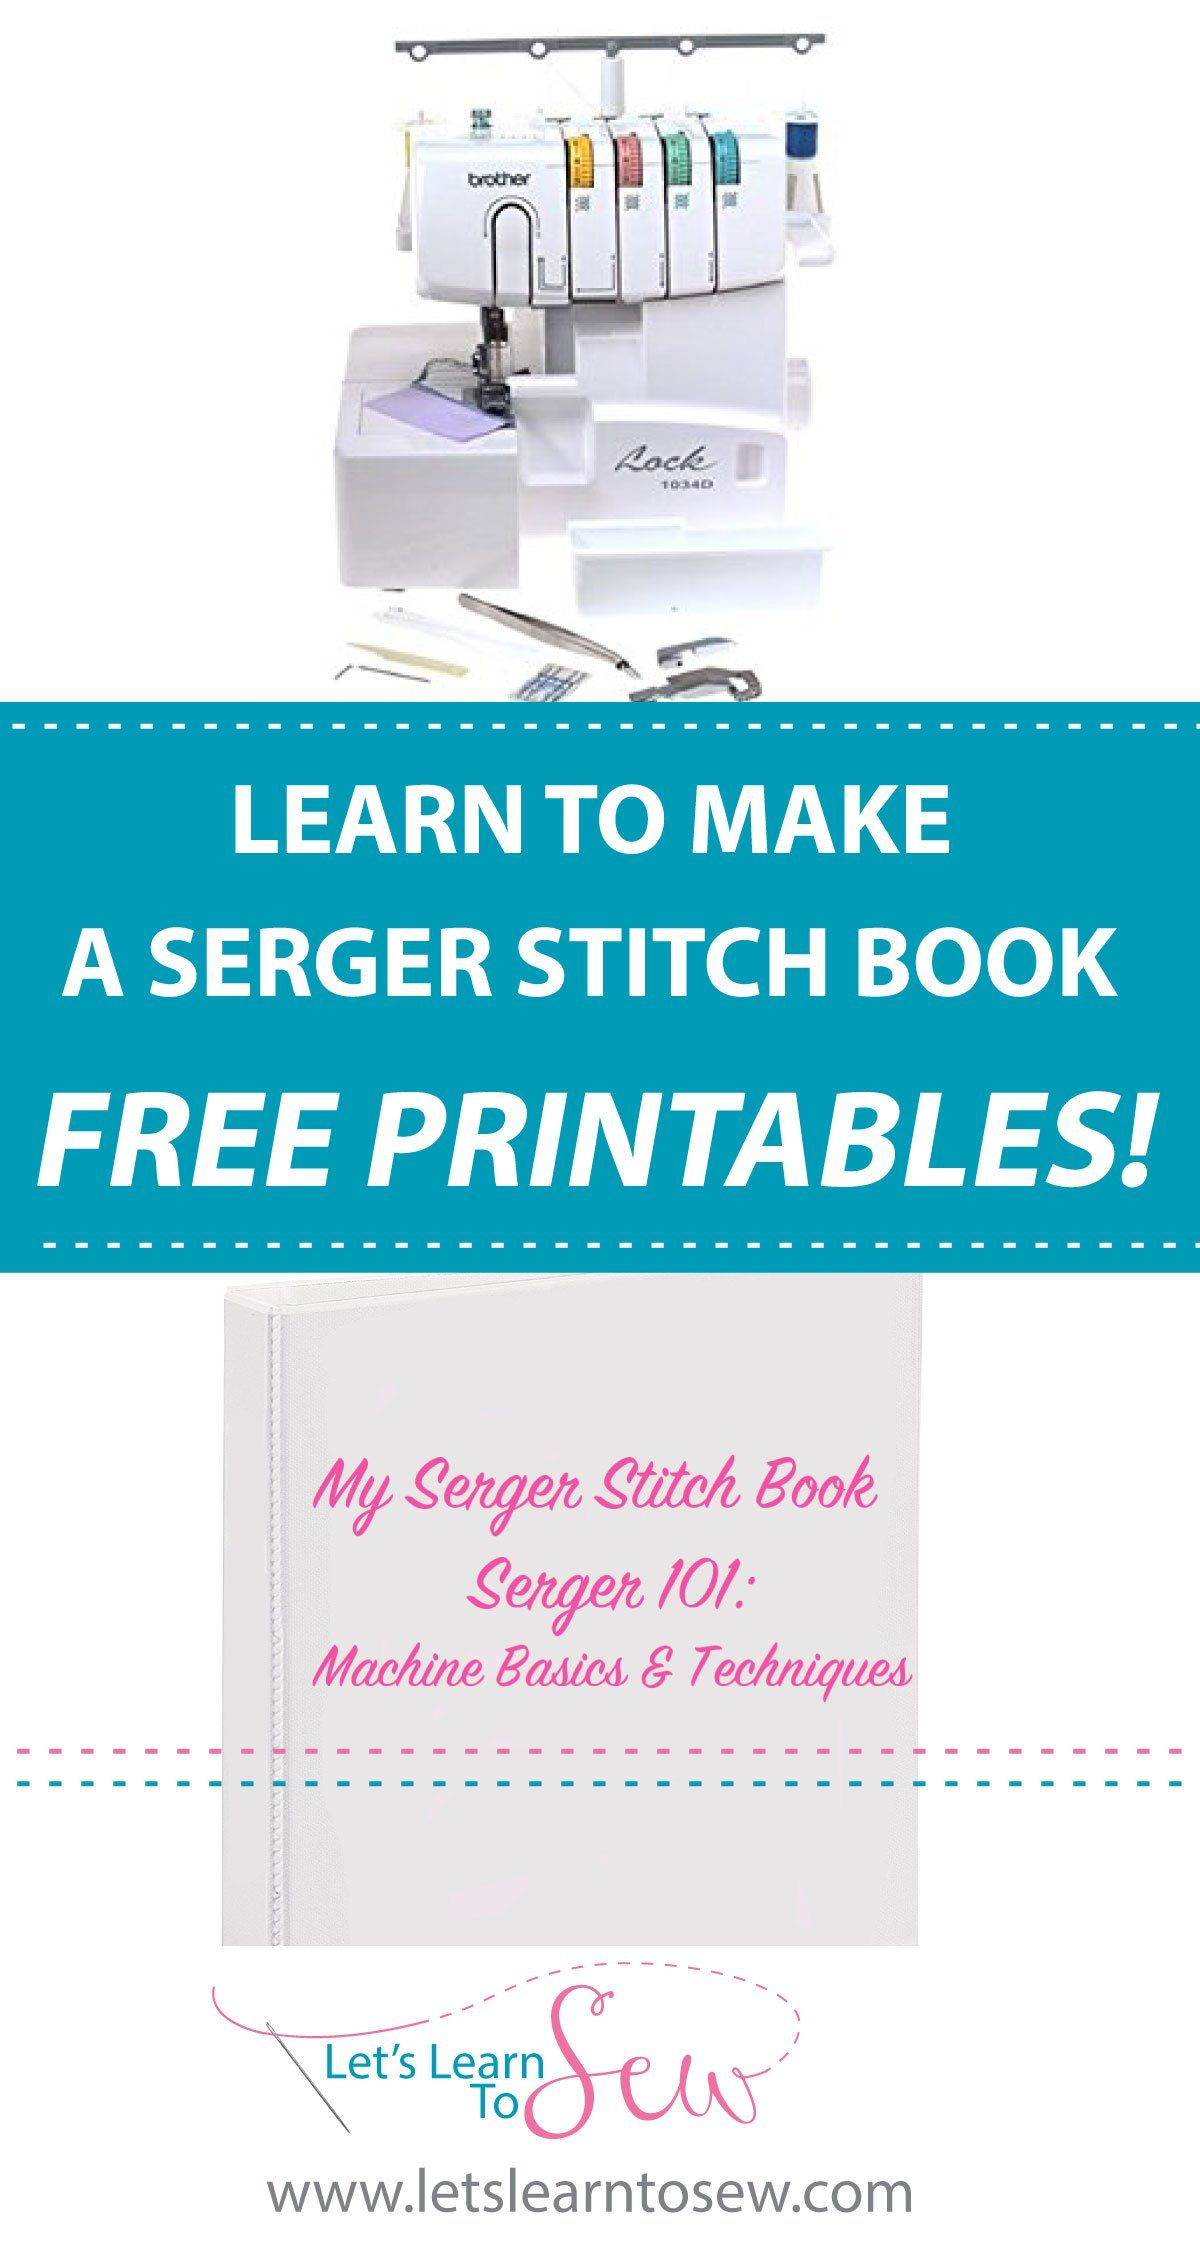 How To Make A Serger Stitch Book. Including free printable sheets ...